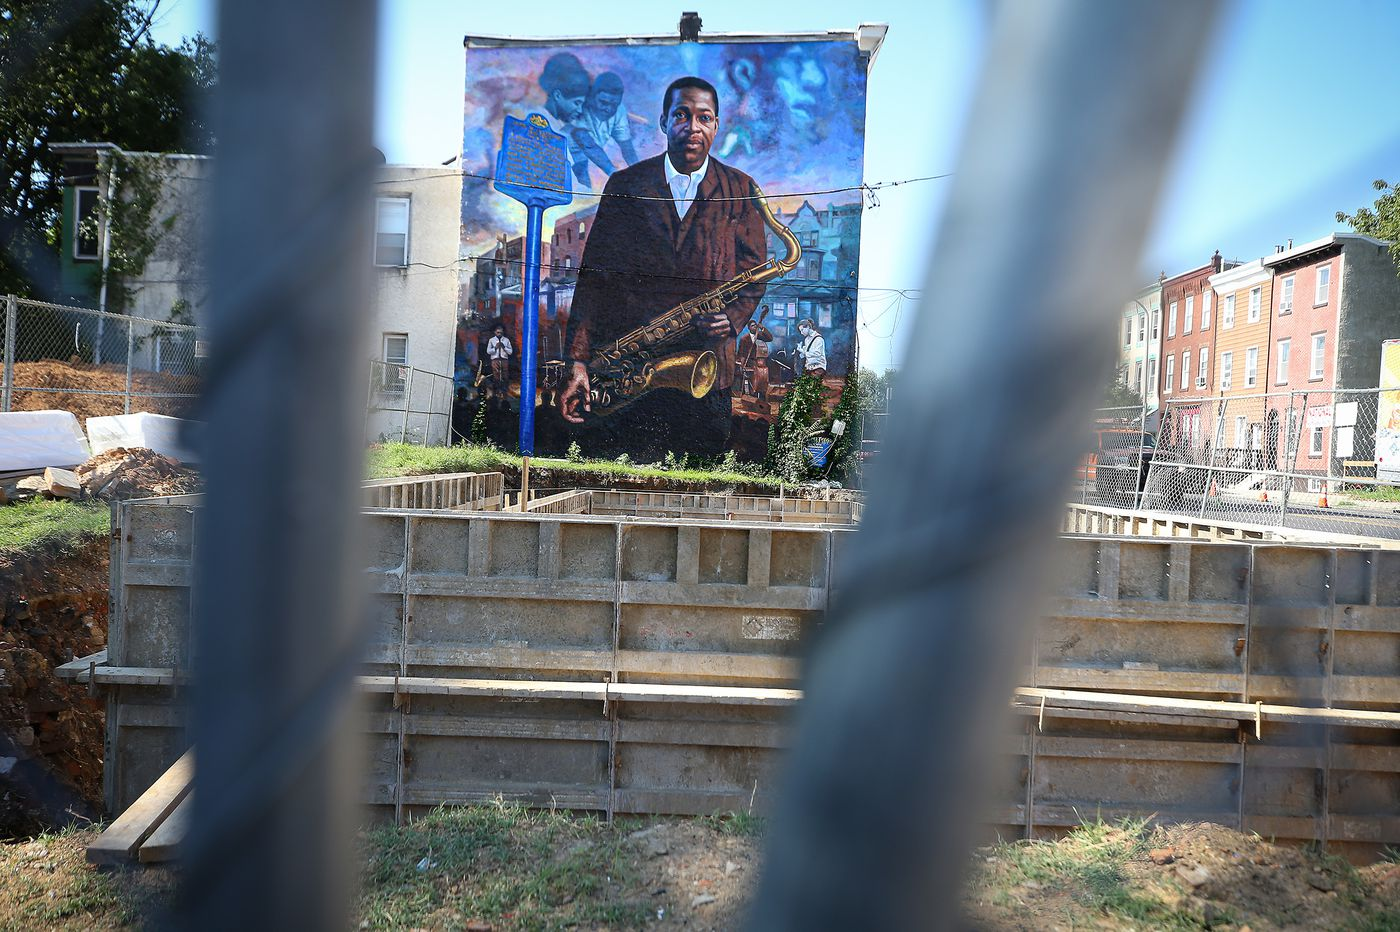 The threat to a John Coltrane mural shows how development can erase Black history in Philly